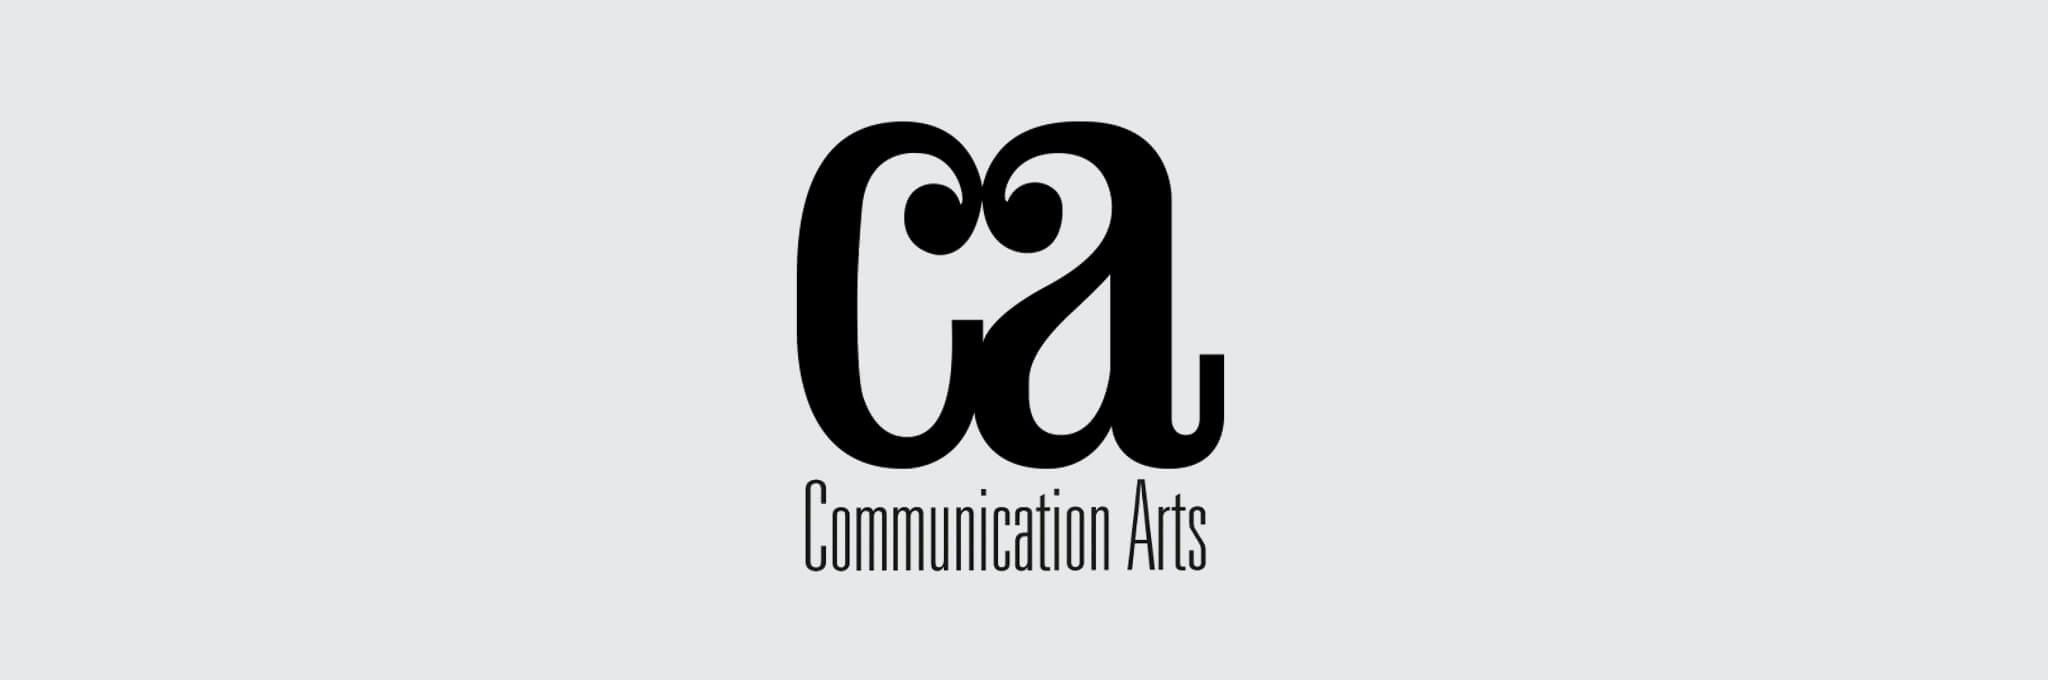 Black CA Communication Arts logo on light gray background